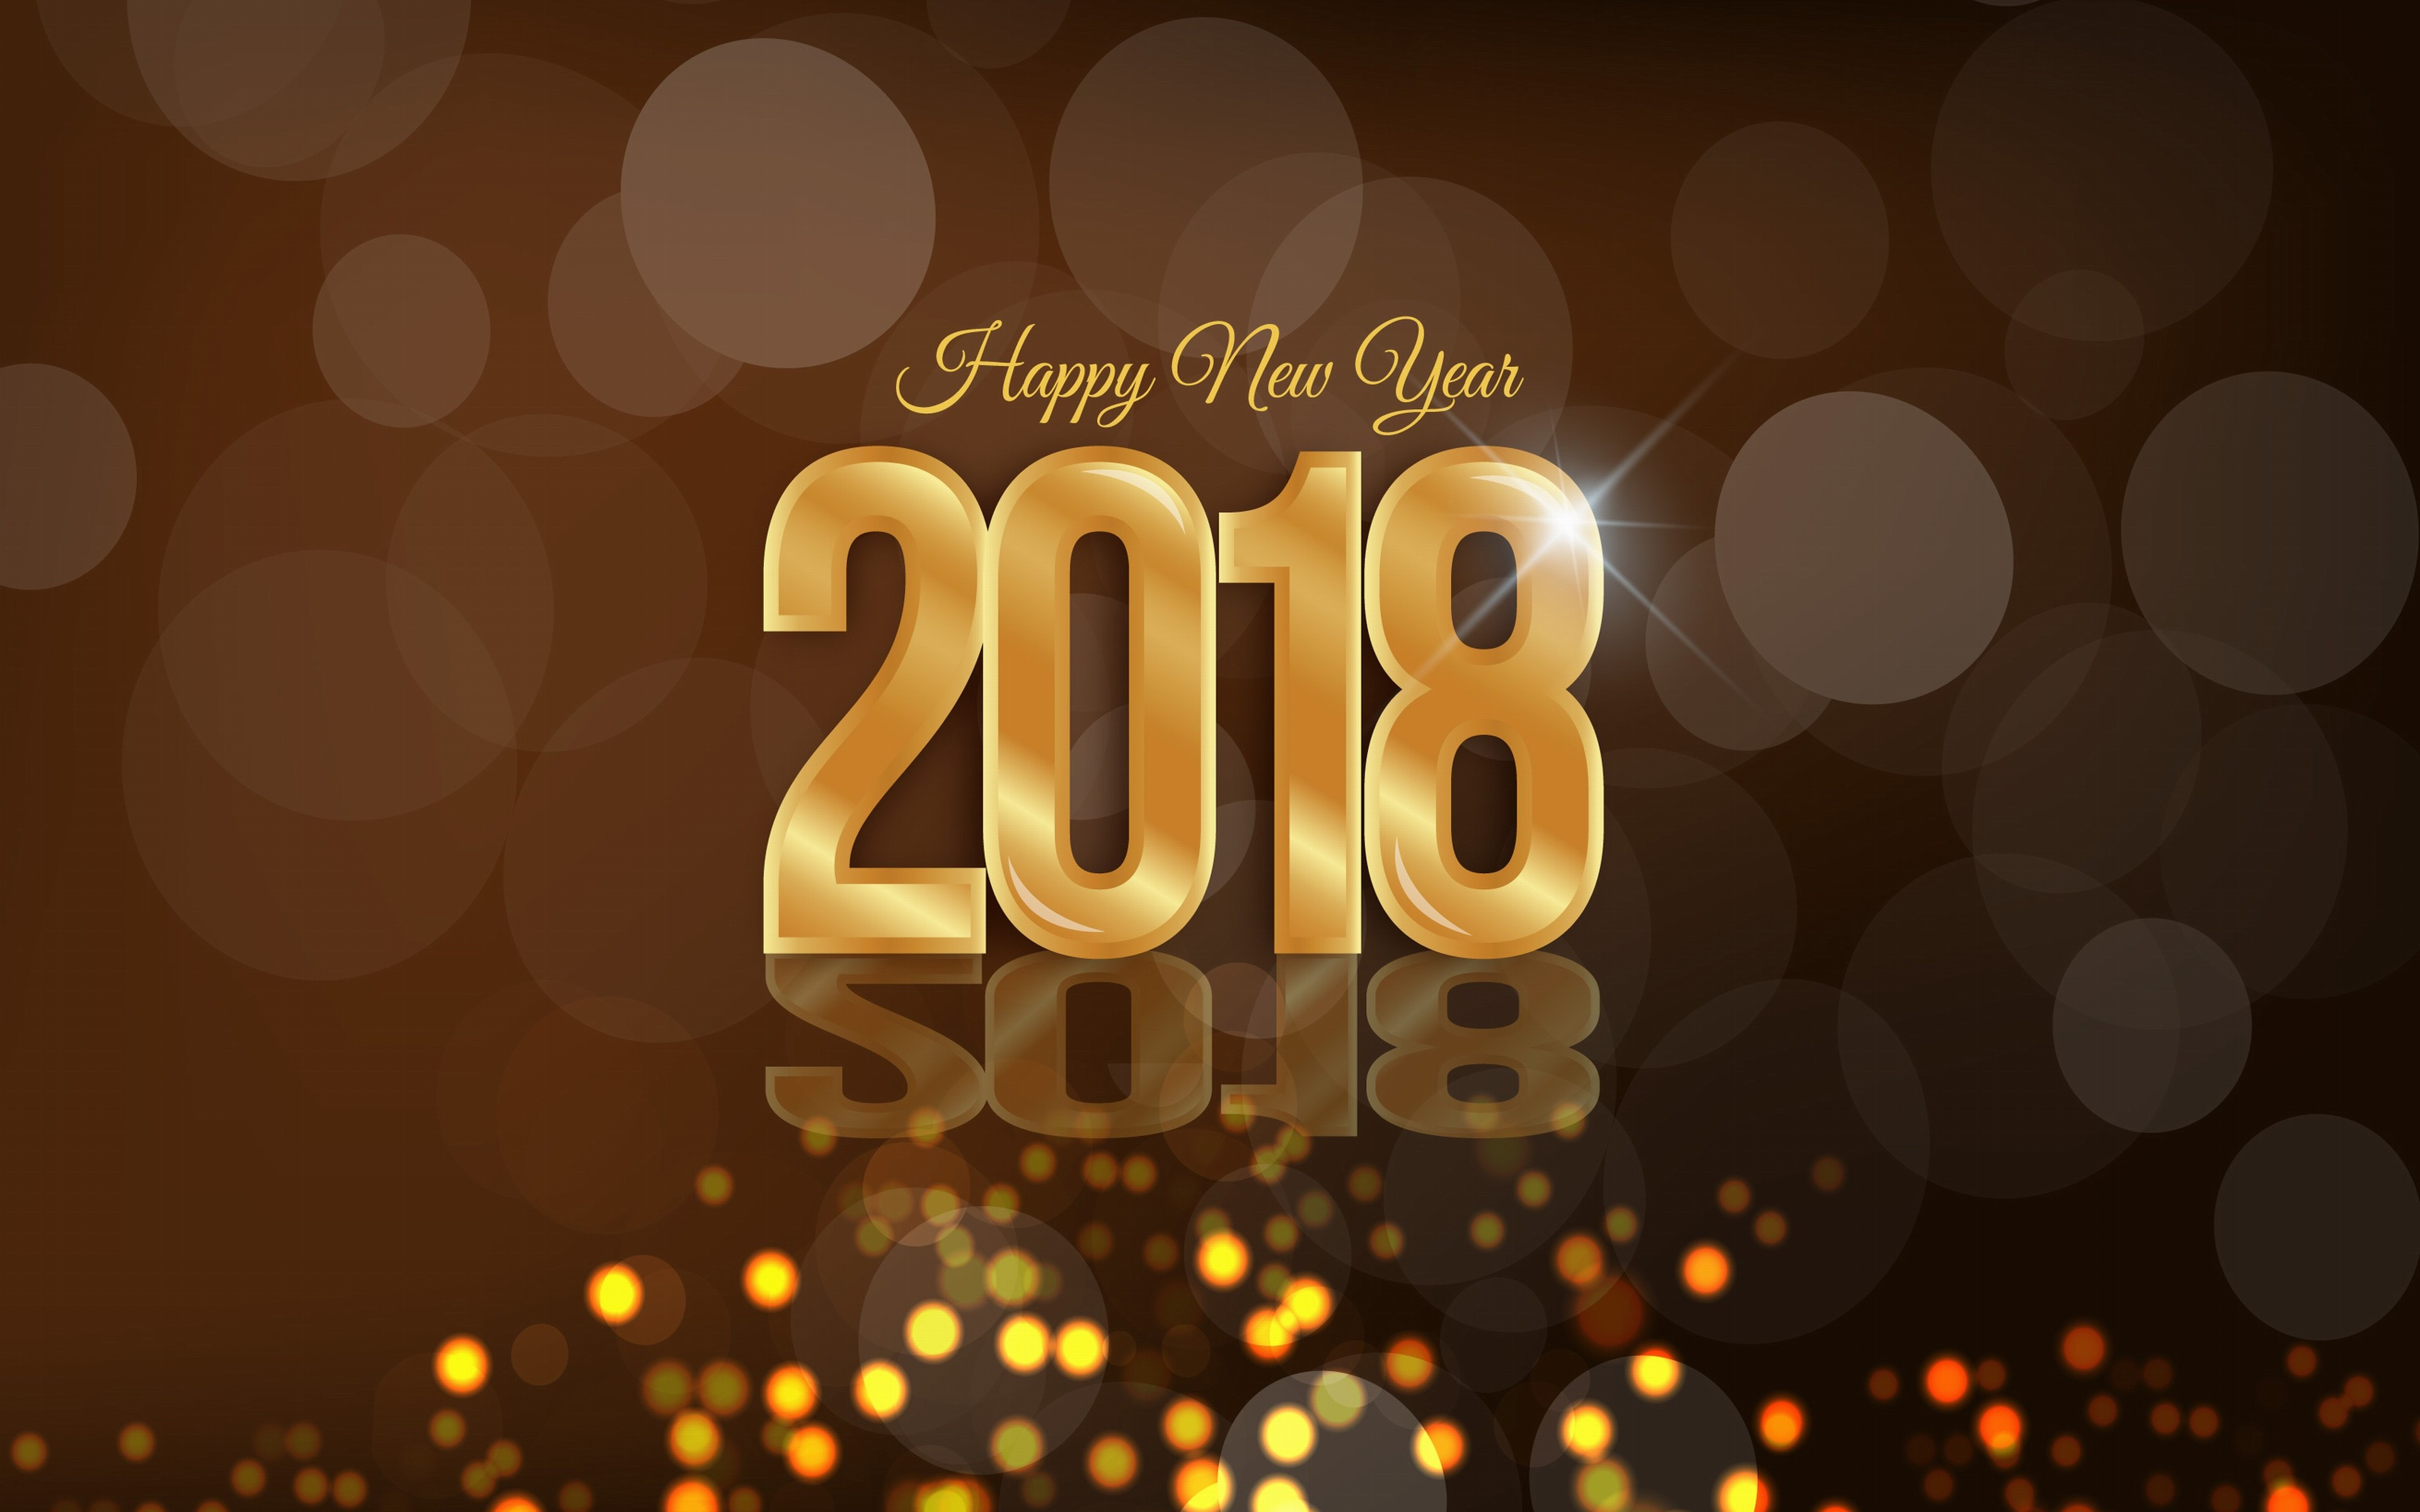 happy new year 2018 wallpaper 4k hd download for desktop 3840x2400